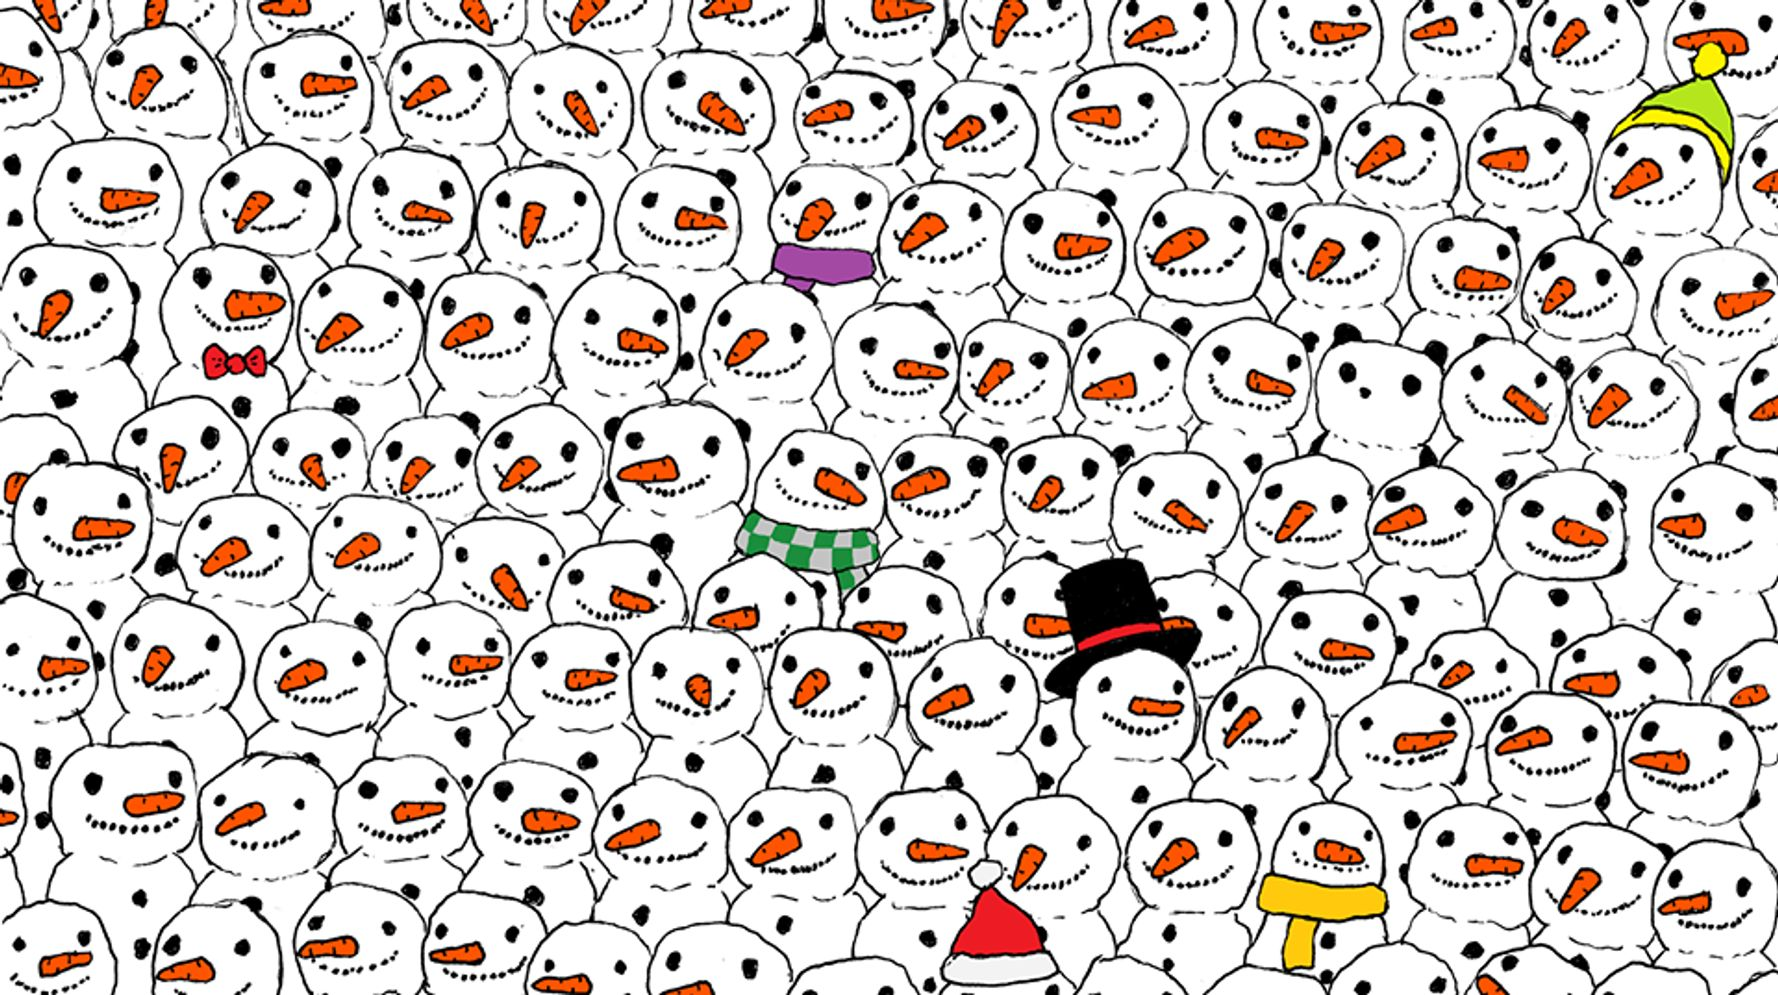 The Internet Is Struggling To Find The Hidden Panda In This Viral Drawing